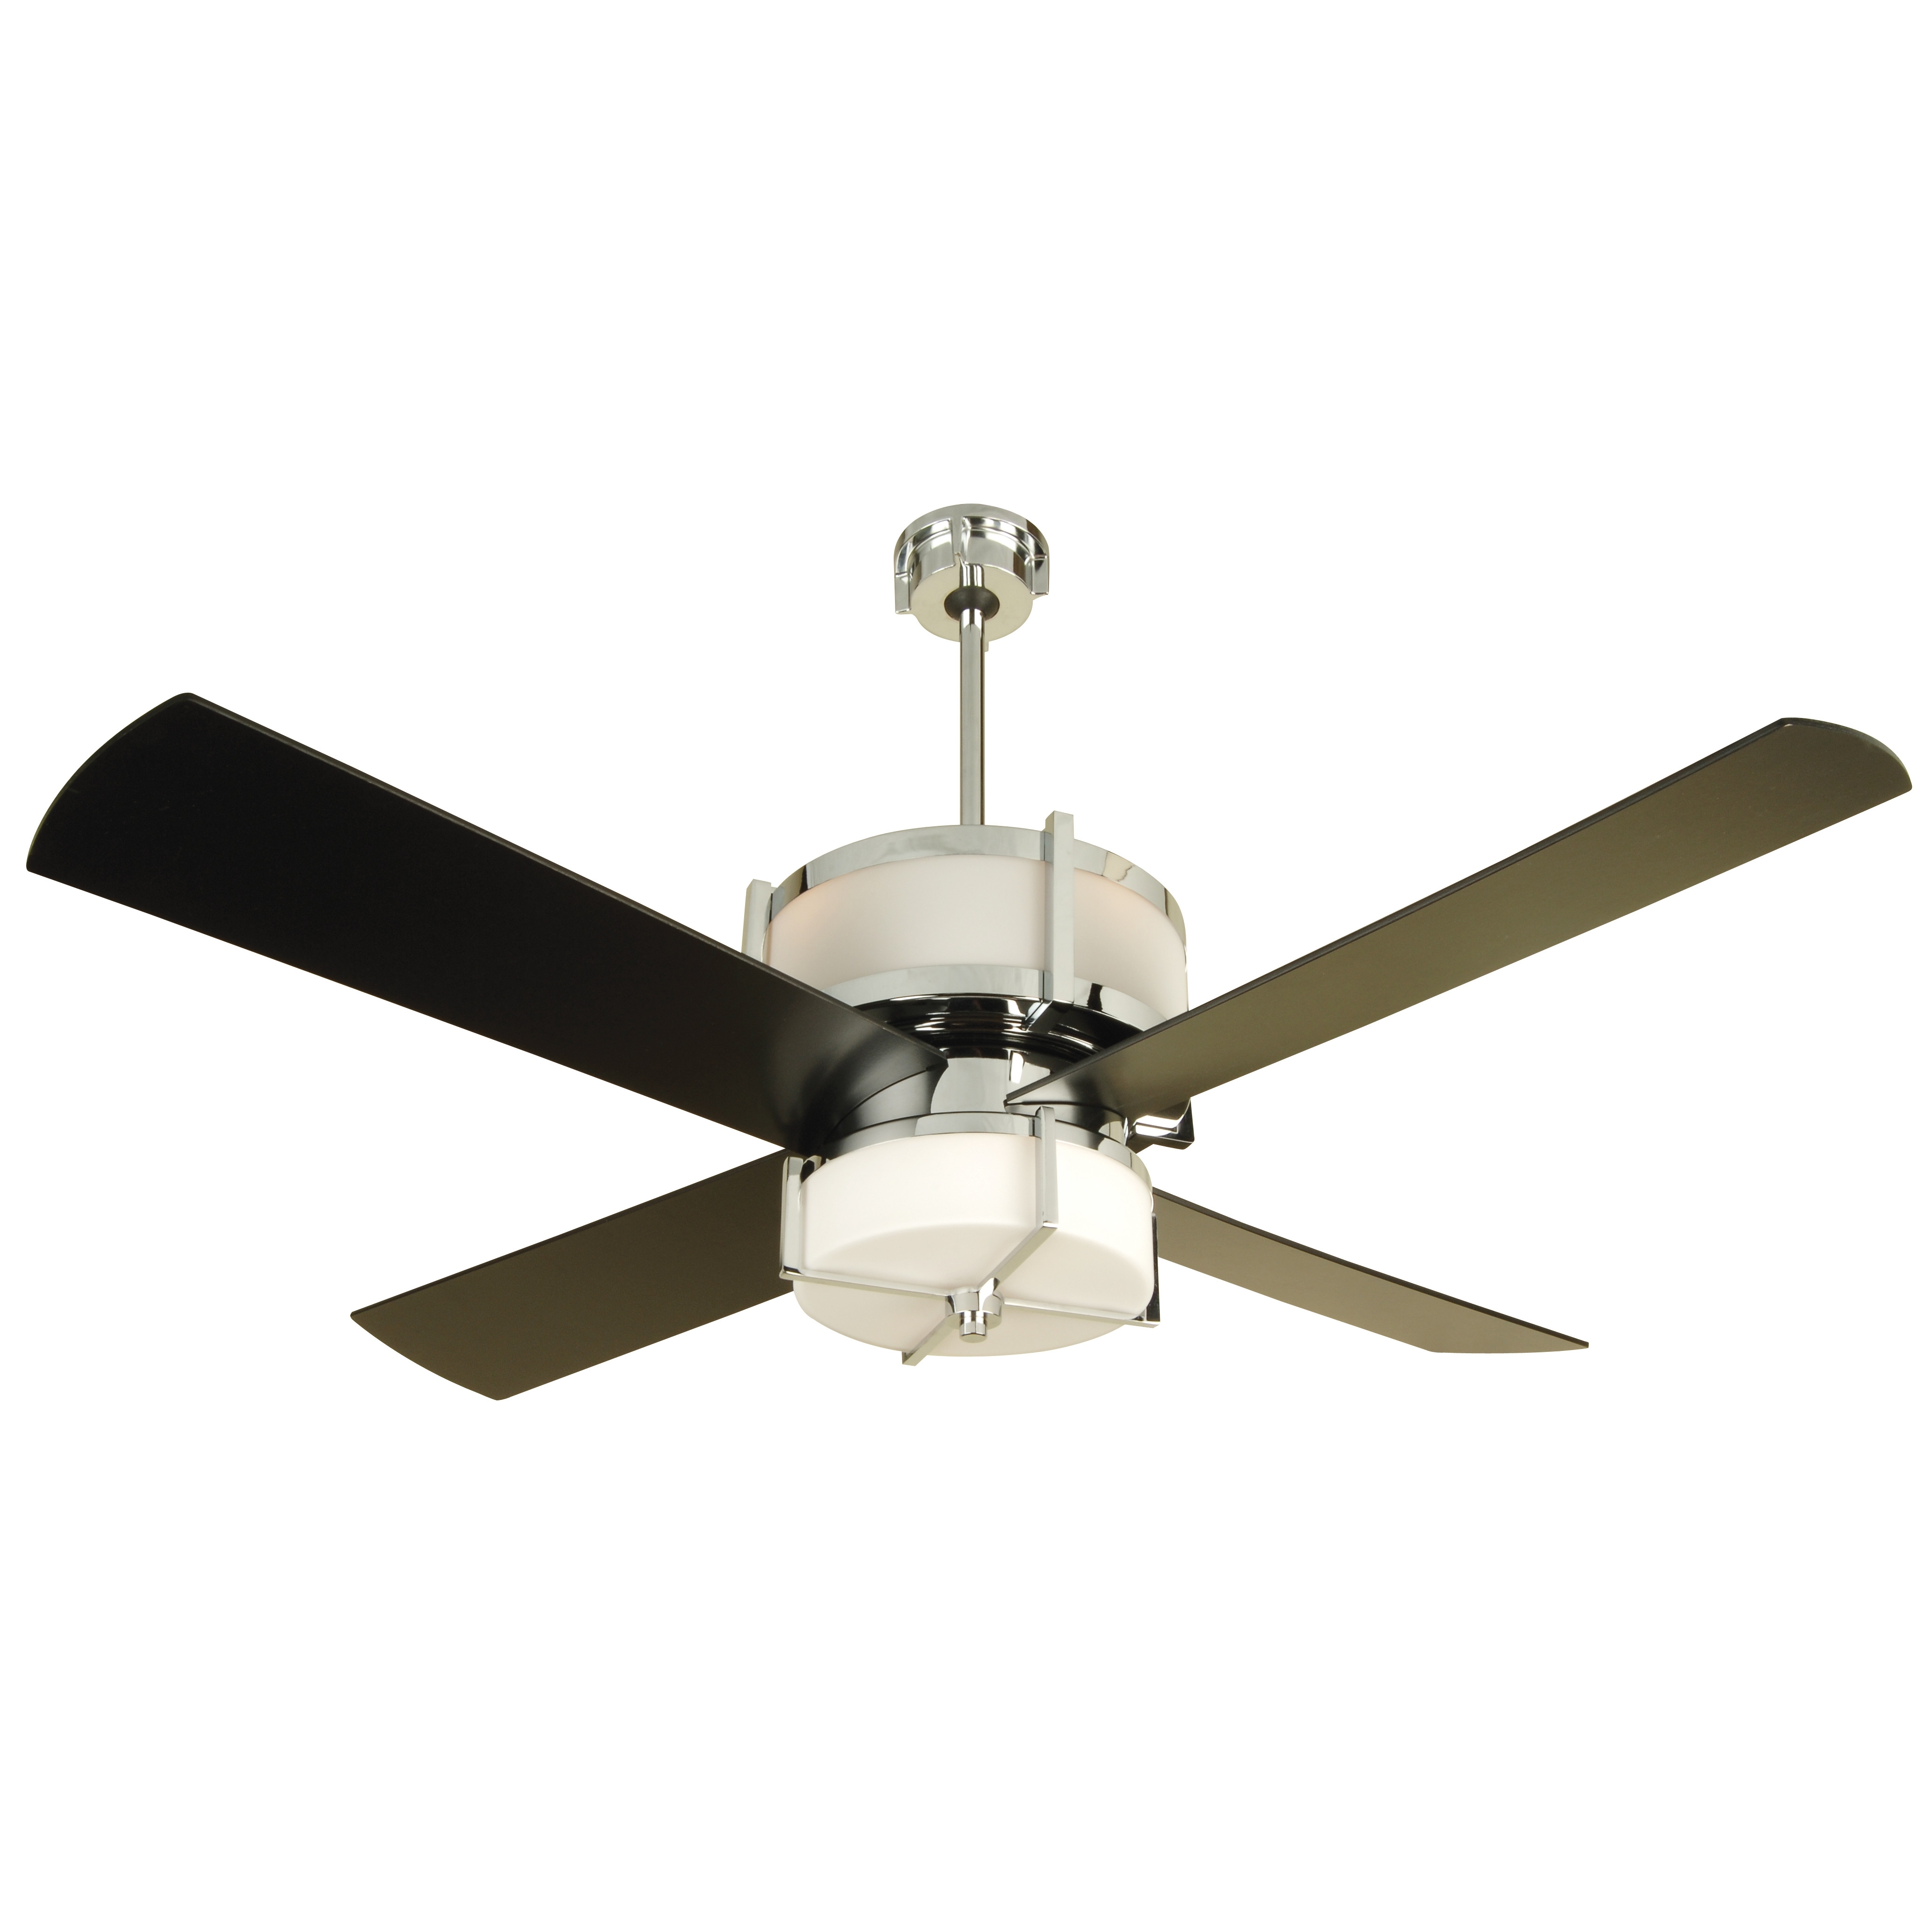 48 Outdoor Ceiling Fans With Light Kit Throughout Popular Ceilings: Remarkable Craftmade Ceiling Fans For Appealing Home (Gallery 15 of 20)